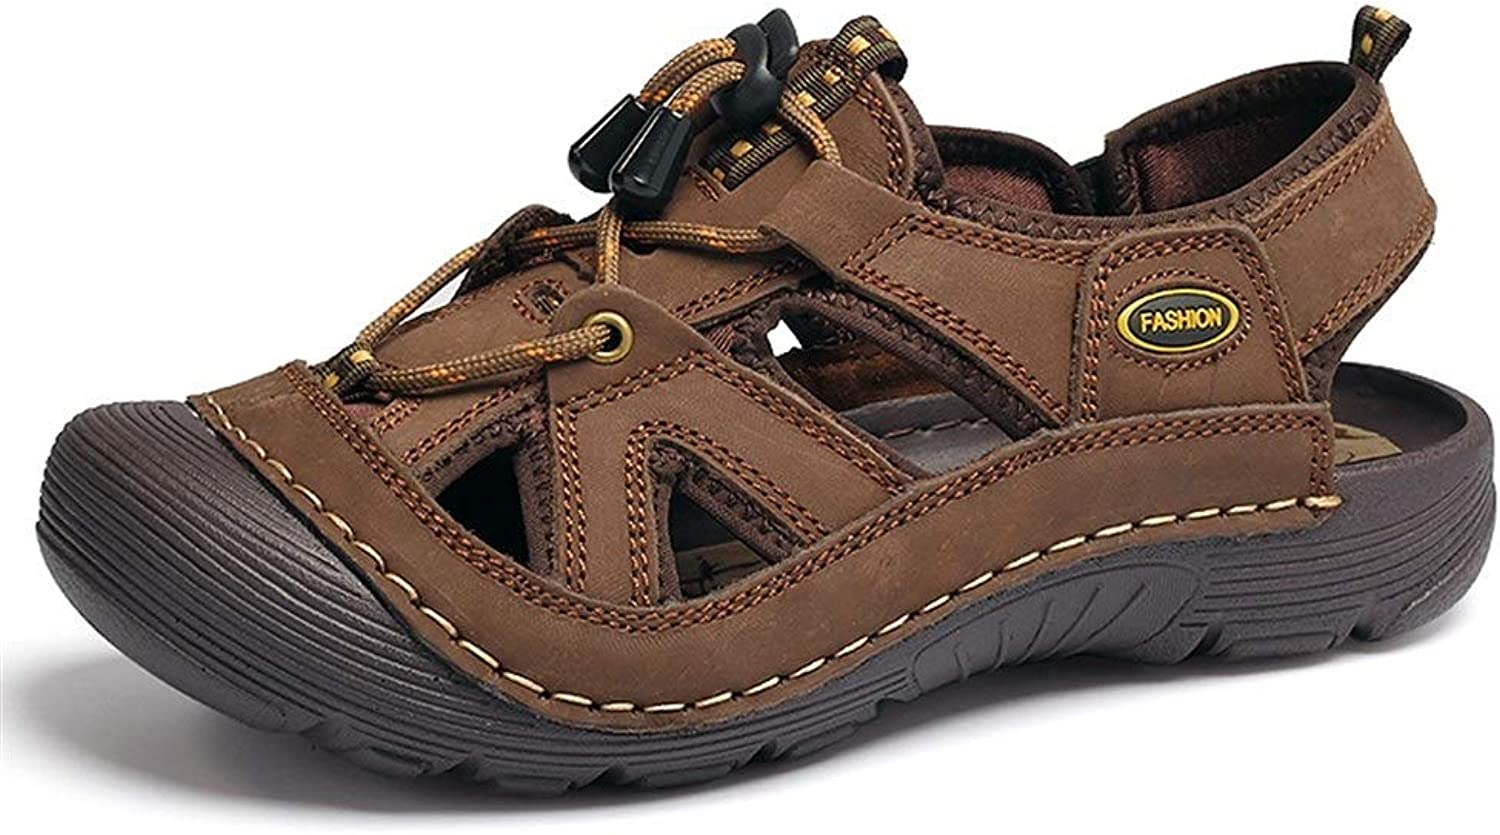 Easy Go Shopping Sandals for Men Casual Water shoes Genuine Leather Outdoor Sport Hiking Sandals Cricket shoes (color   Brown, Size   9 UK)